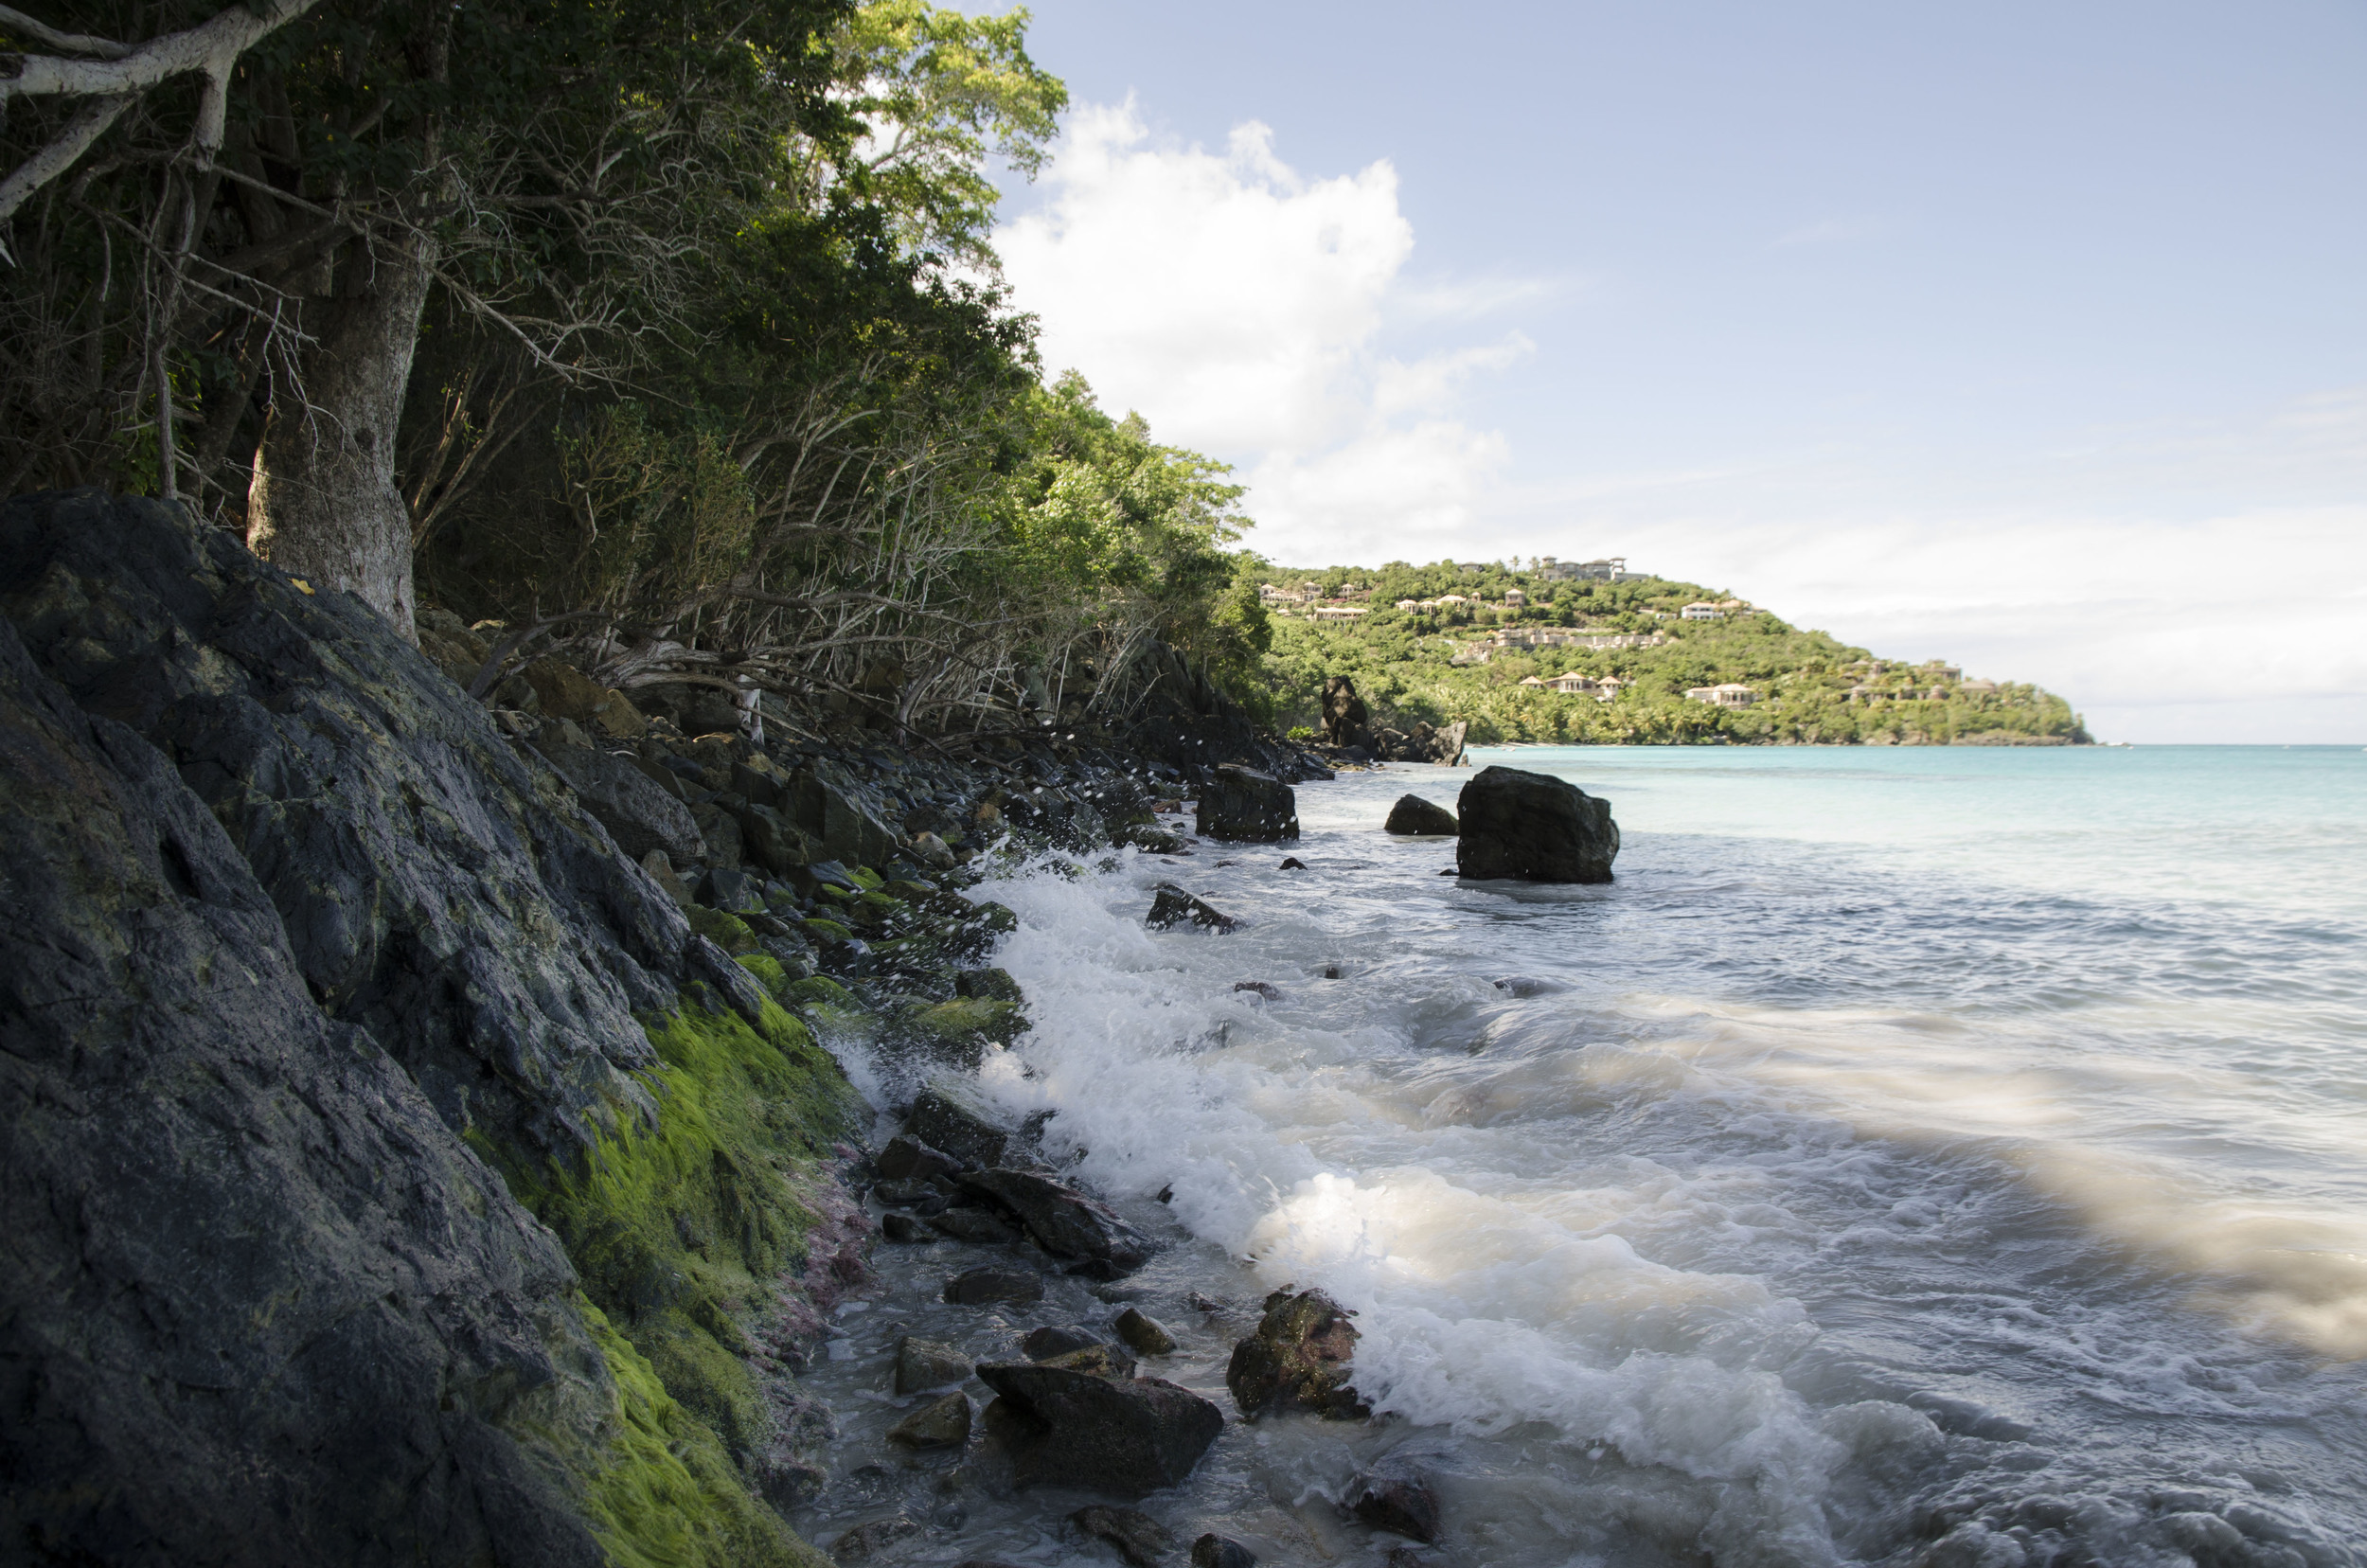 Water splashes against the rocks of Cinnamon Bay, U.S. Virgin Islands